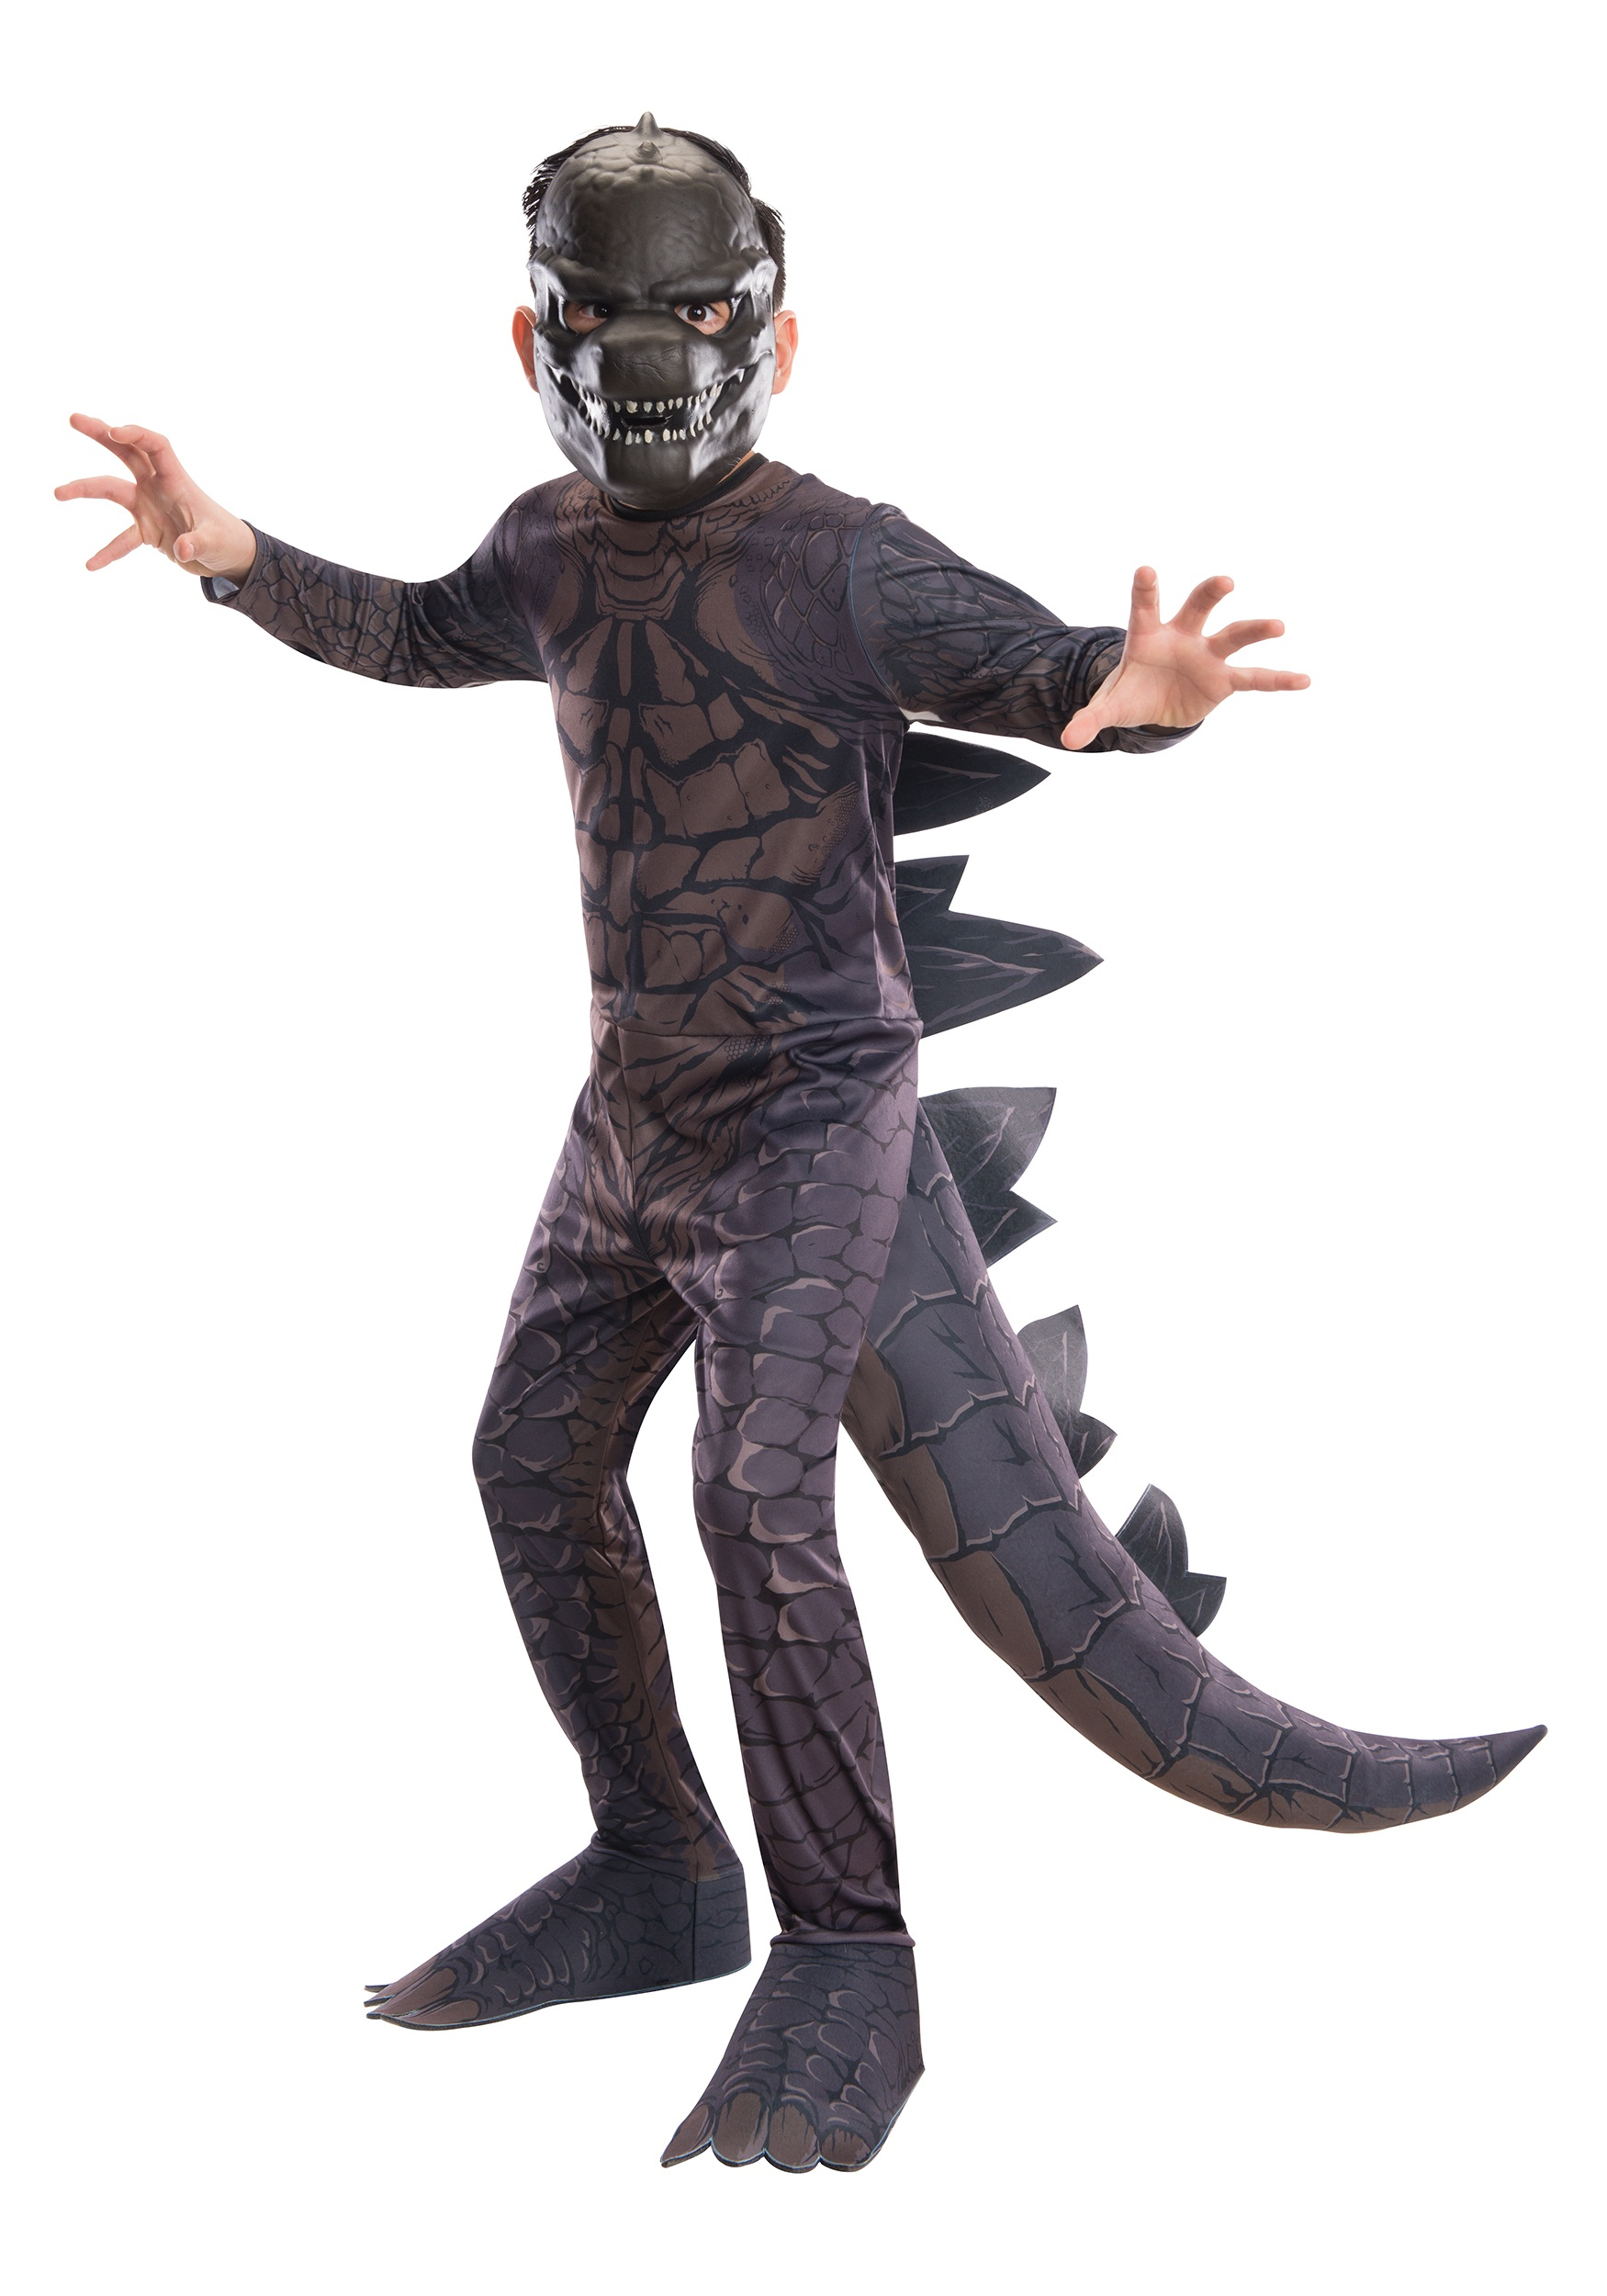 Scary Kids Costumes - Scary Halloween Costume for Kids